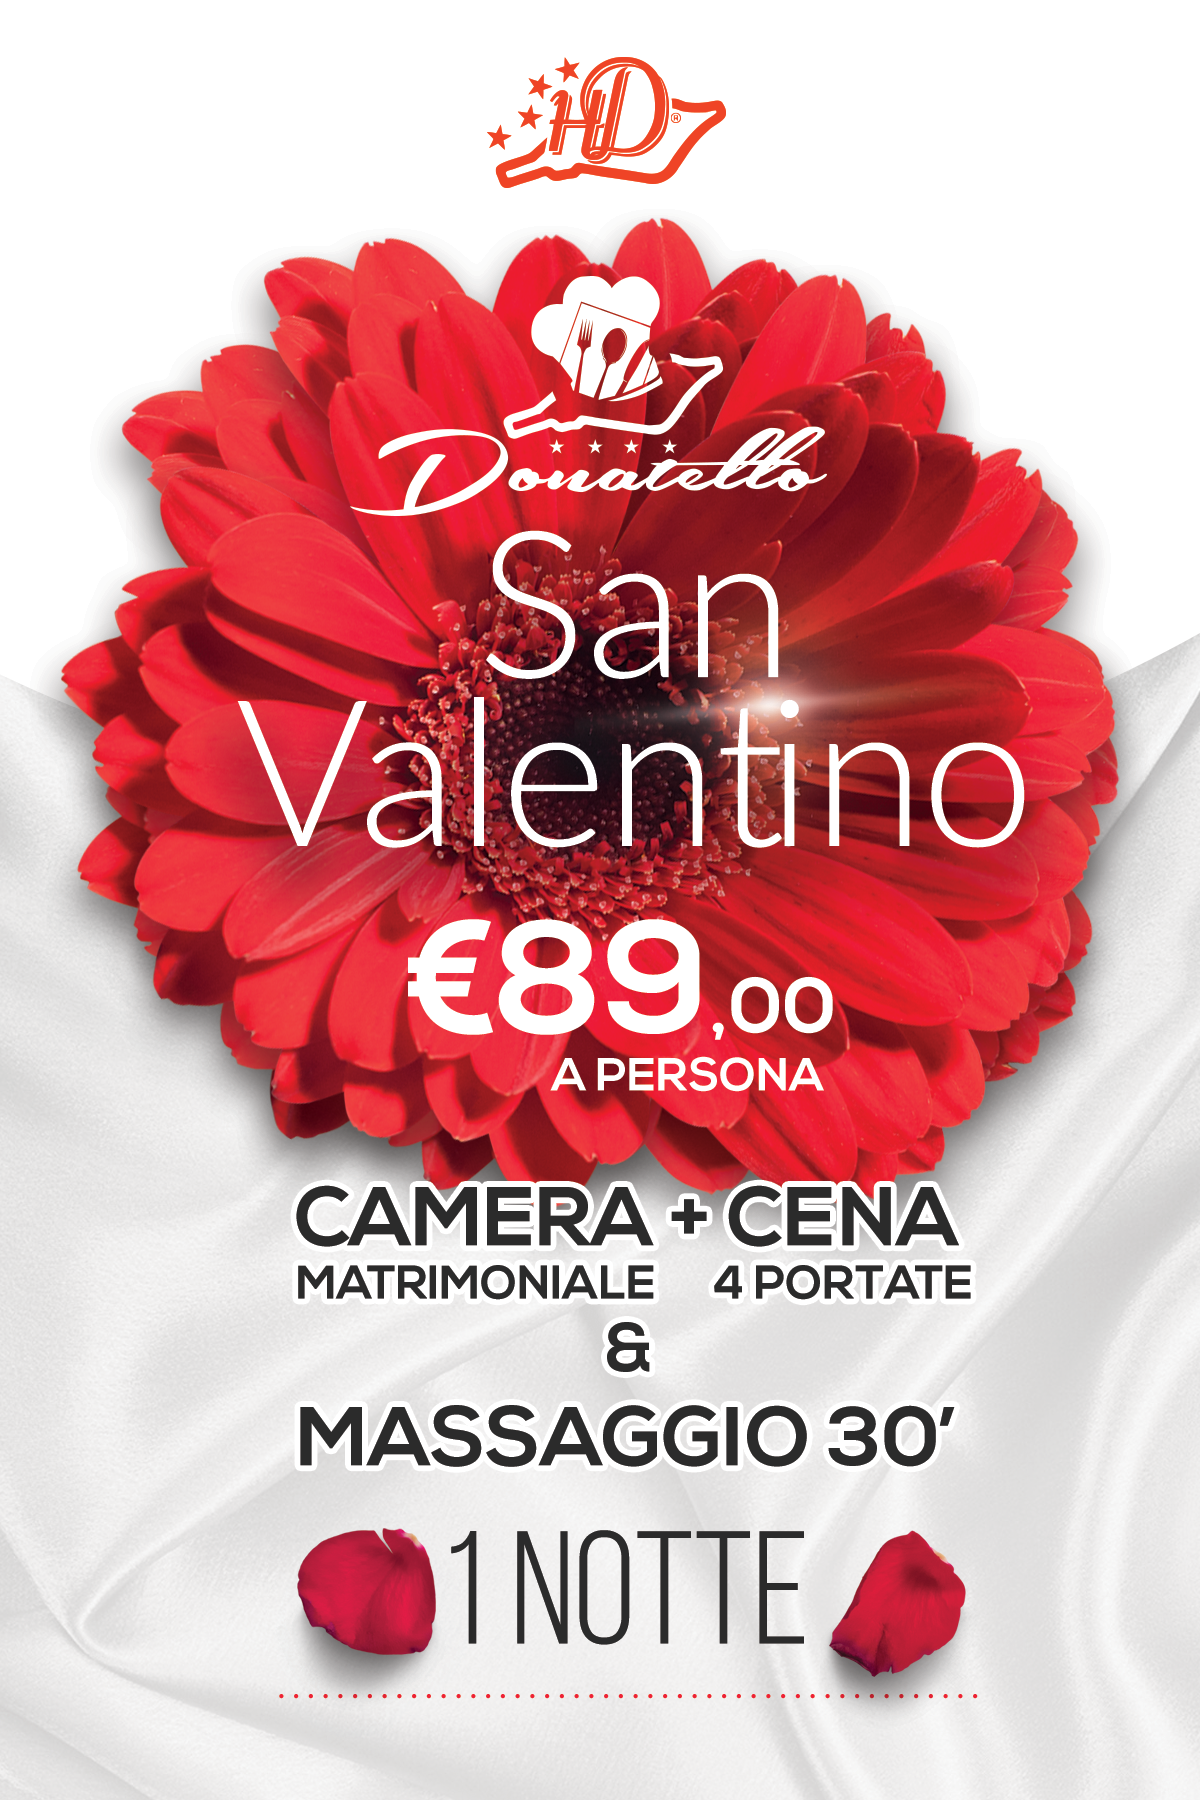 svalentino_camera_cena_massaggio